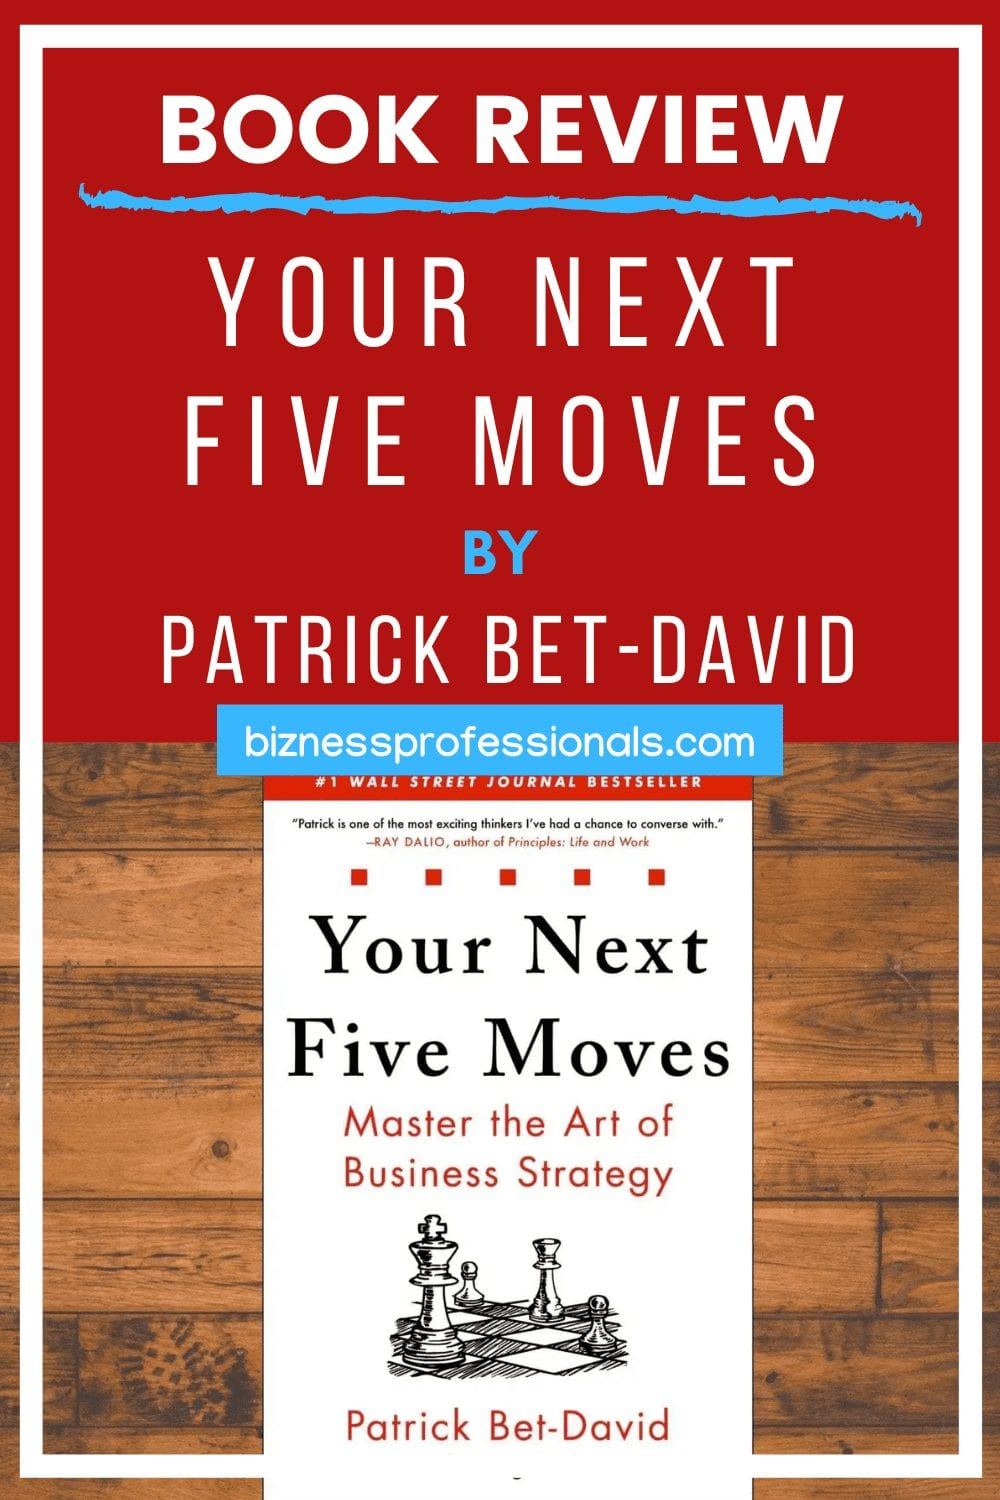 book review your next five moves by patrick bet david